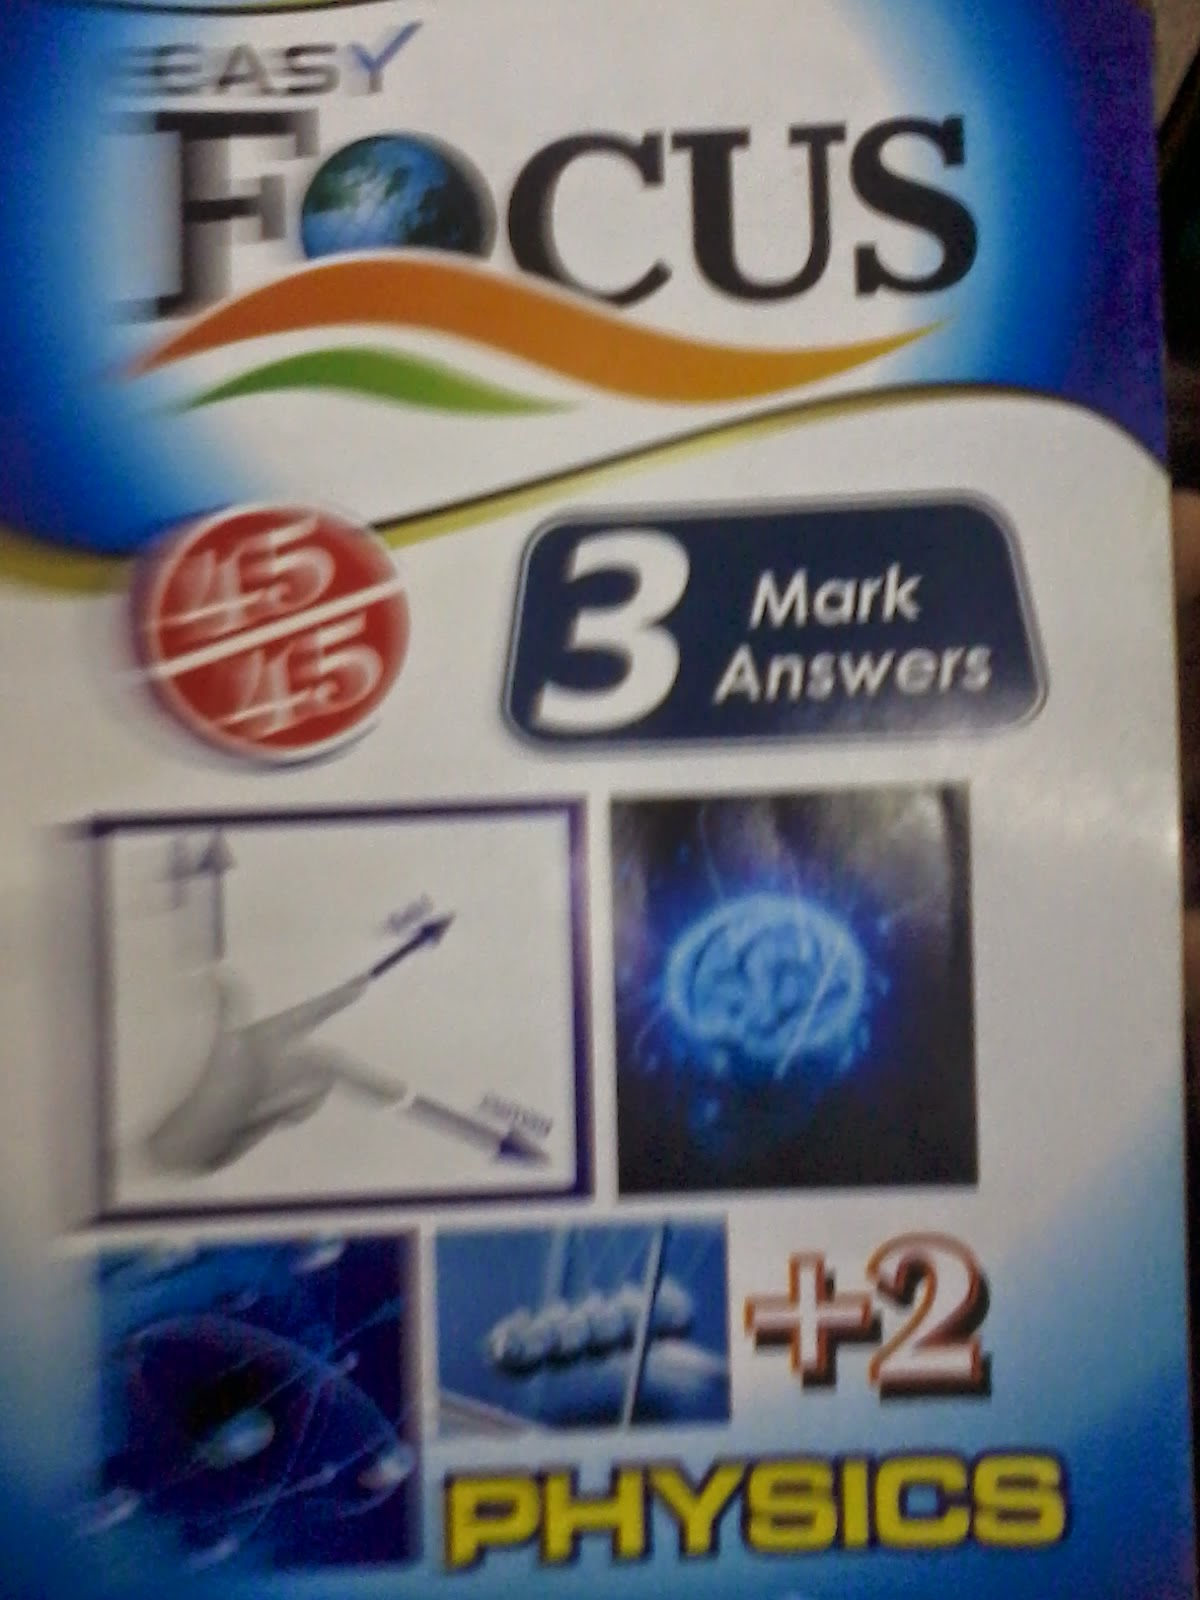 +2  Physics  3 Mark Question &  Answer  by  Easy  Focus